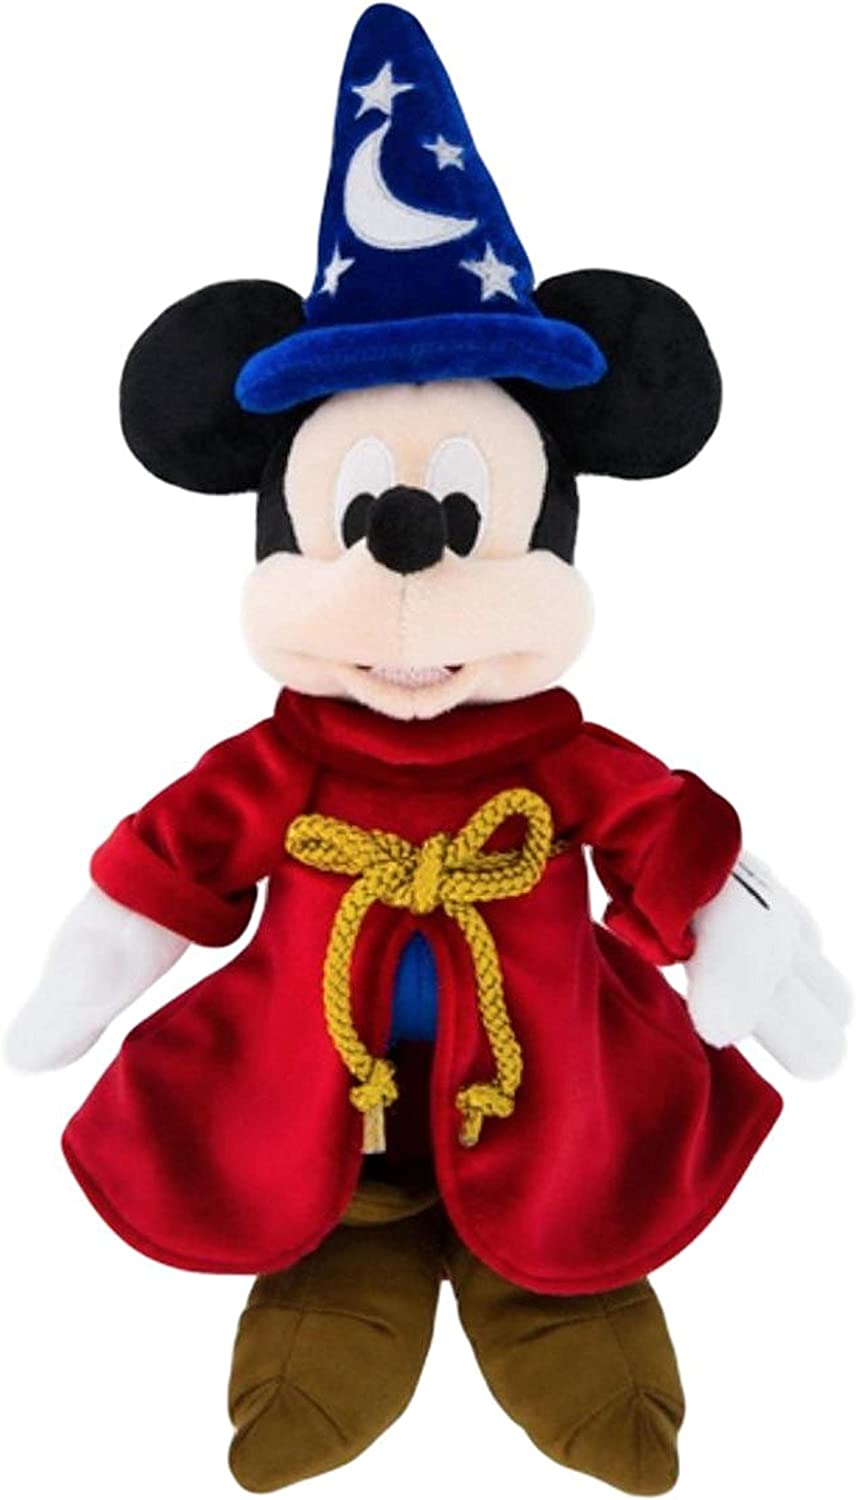 Disney Parks Mickey Mouse Sorcerer Plush  13  Tall